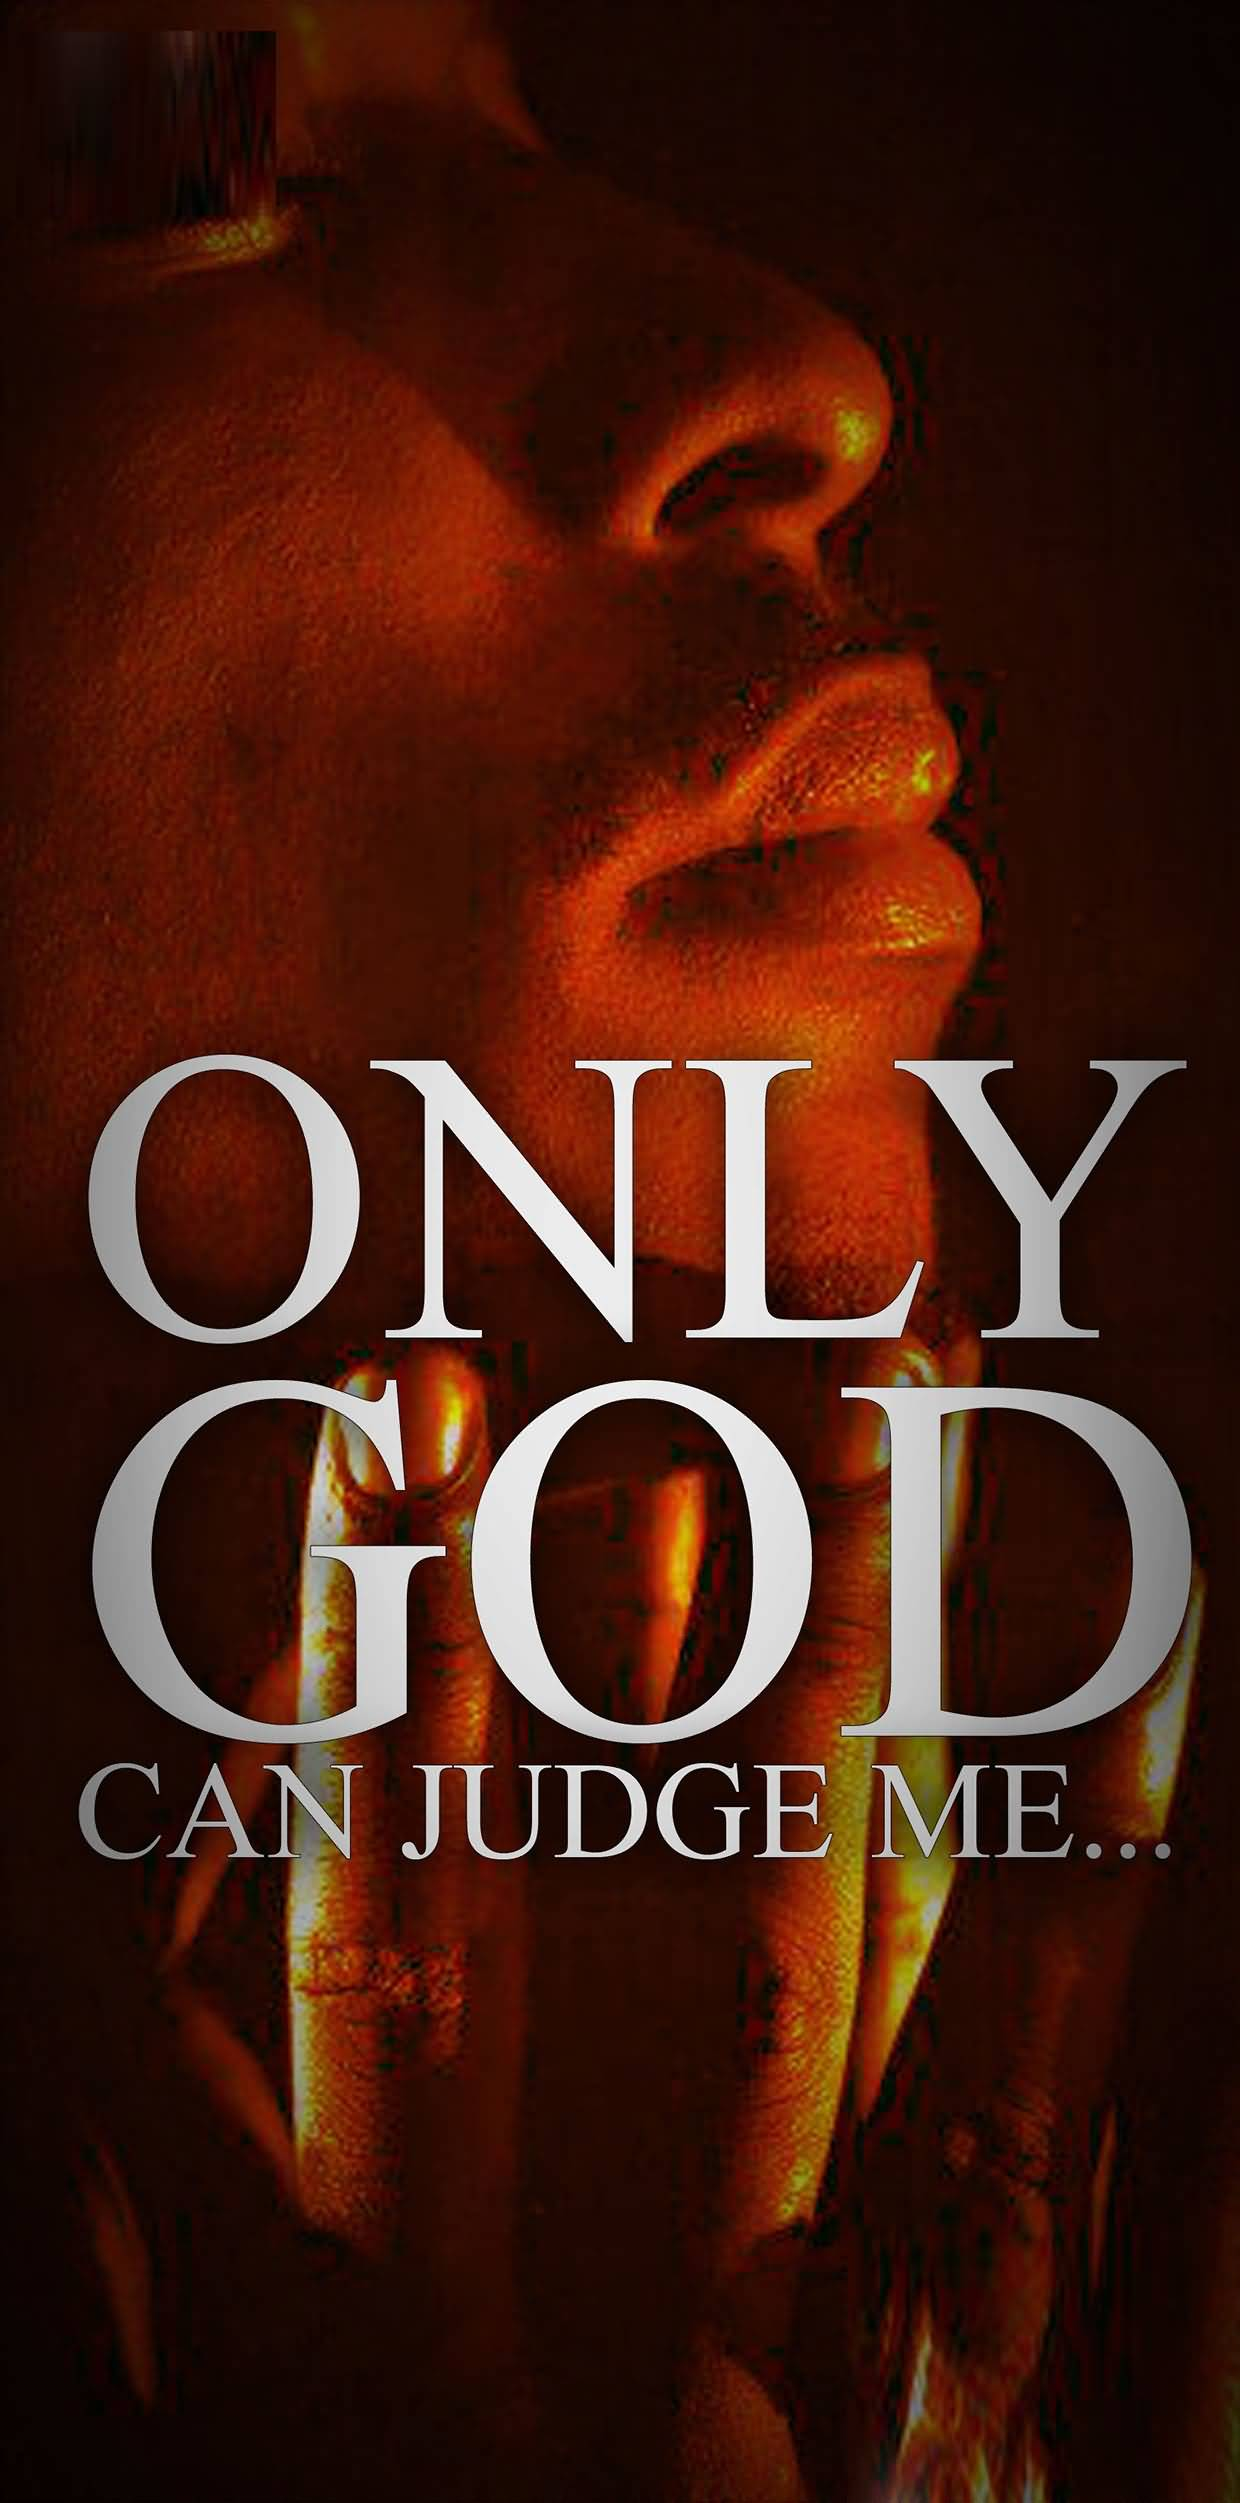 Nigga Quotes Only god can judge me